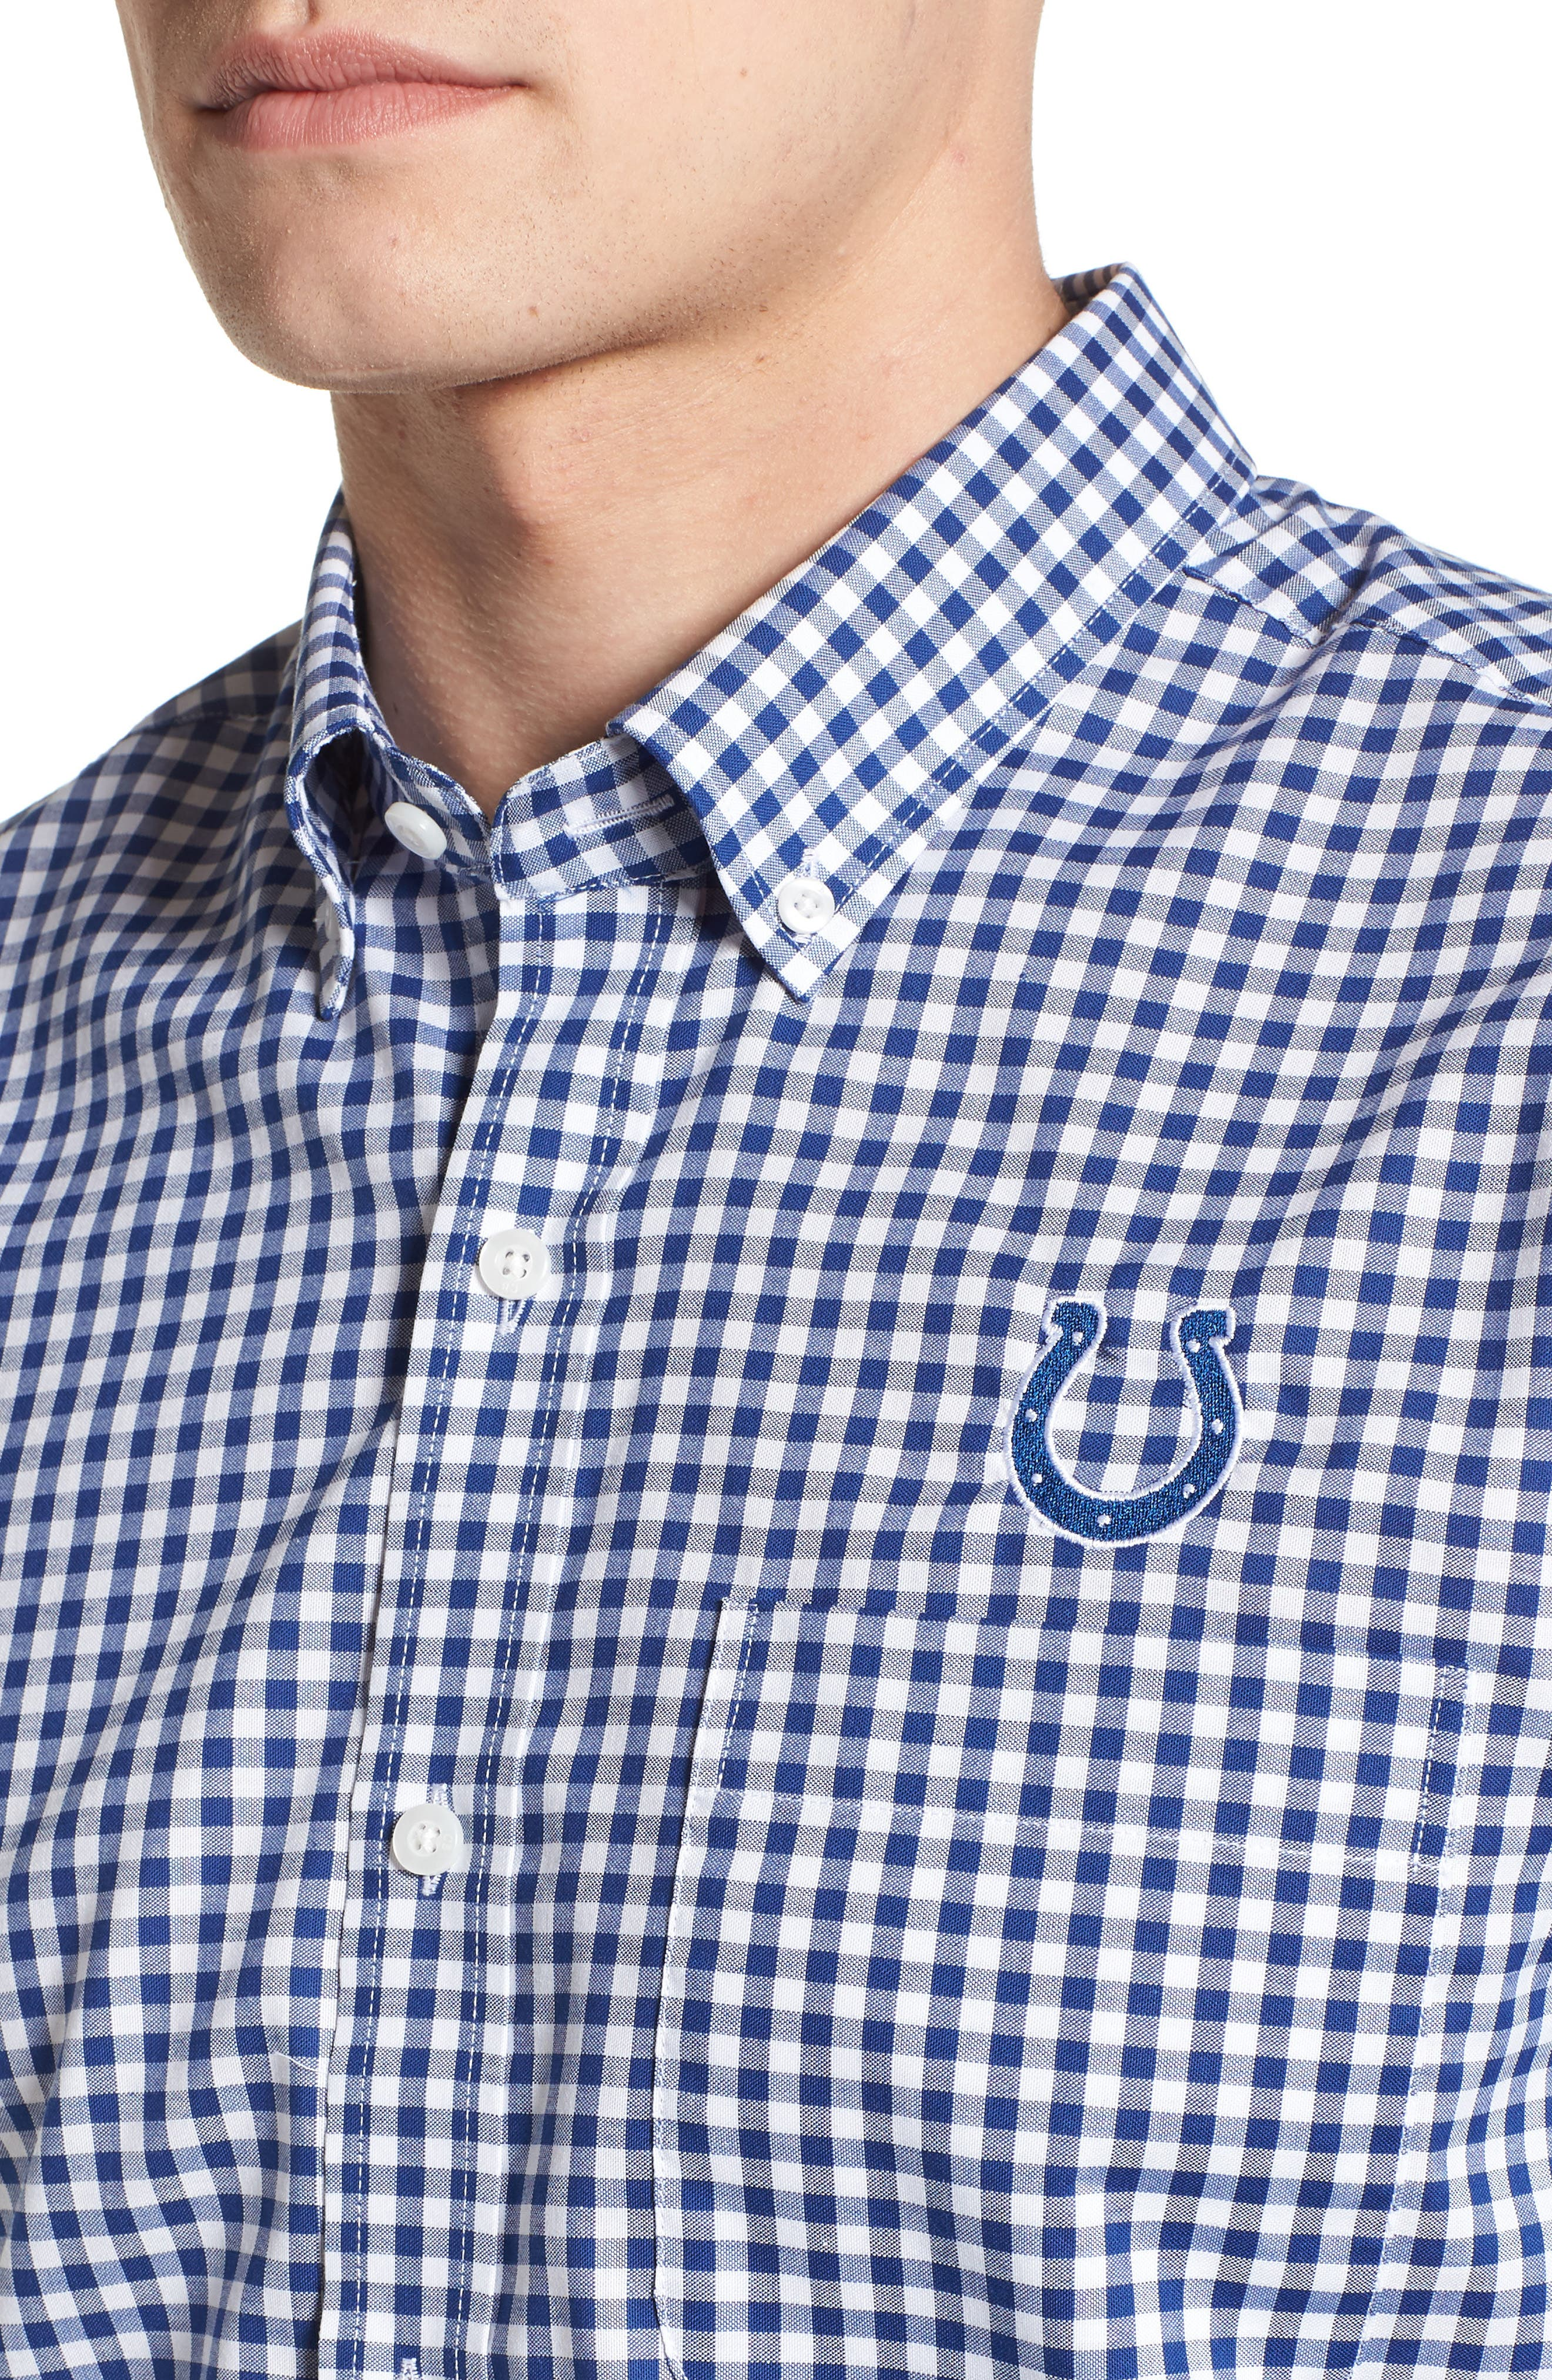 League Indianapolis Colts Regular Fit Shirt,                             Alternate thumbnail 4, color,                             TOUR BLUE